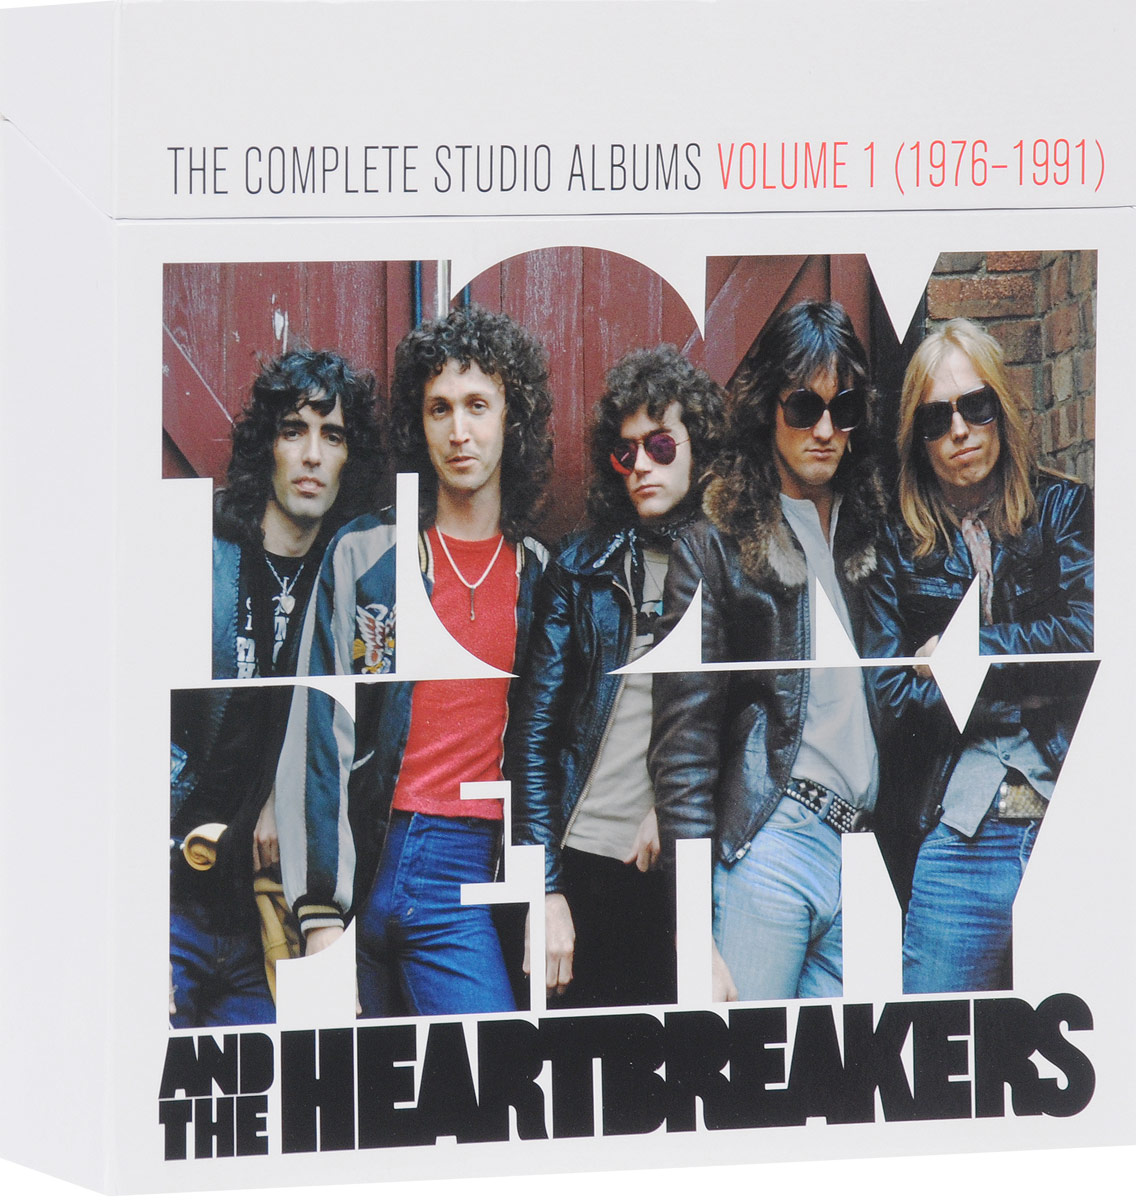 Том Петти,The Heartbreakers Tom Petty And The Heartbreakers. The Complete Studio Albums. Volume 1. (1976-1991) (9 LP) 1pc 1 2 7 8 woodworking cutter cnc engraving tools cutting the wood router bits 1 2 shk